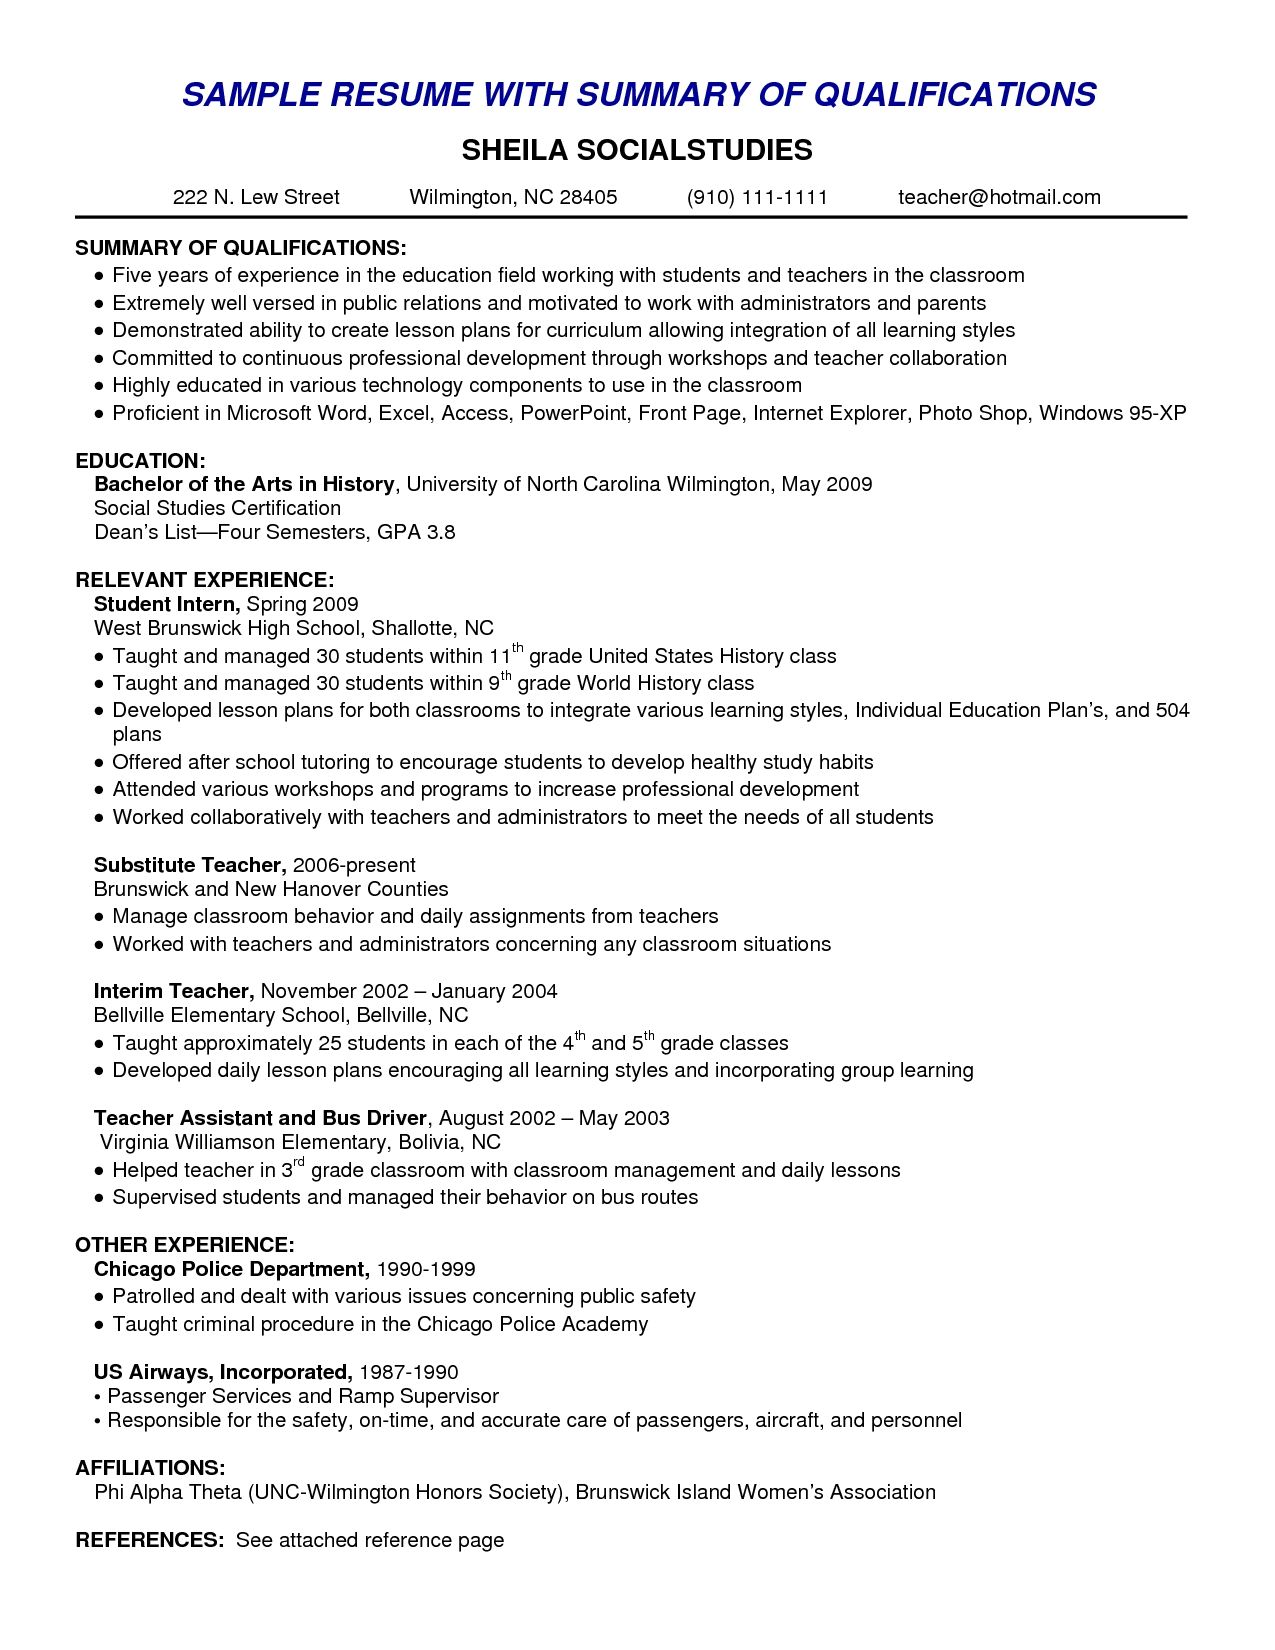 summary resume examples - Selo.l-ink.co